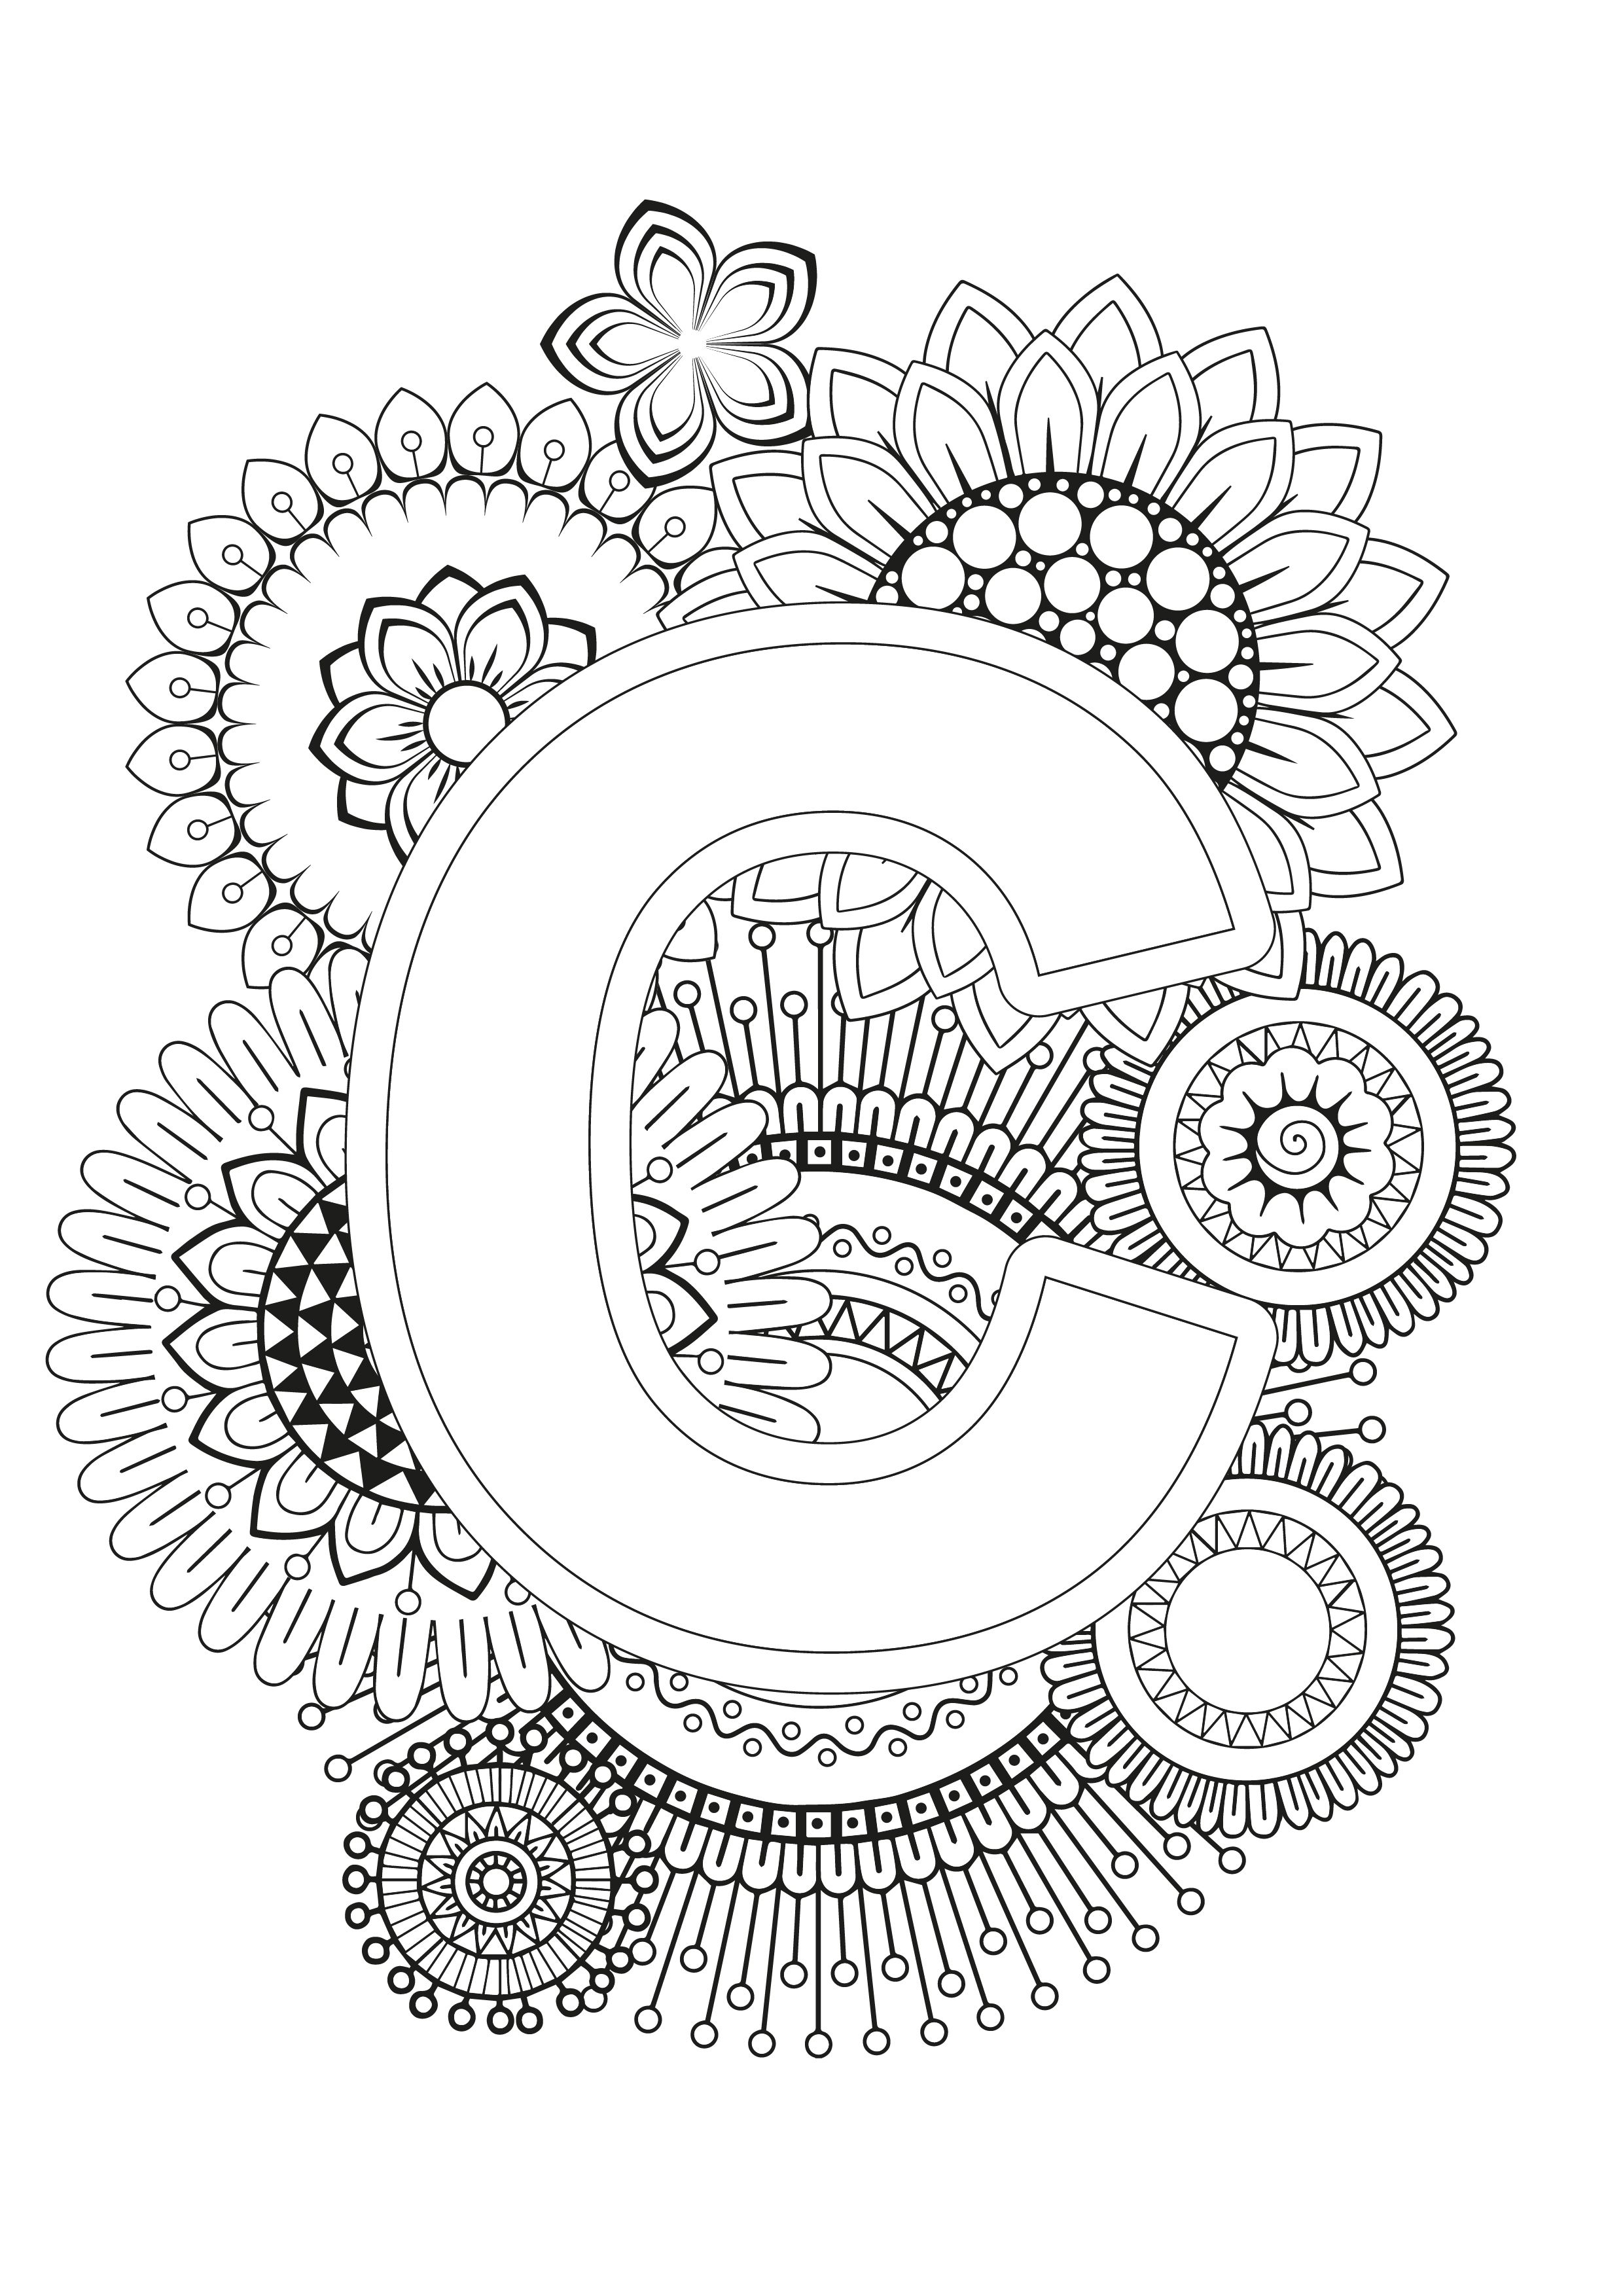 Mindfulness Coloring Pages For Kids